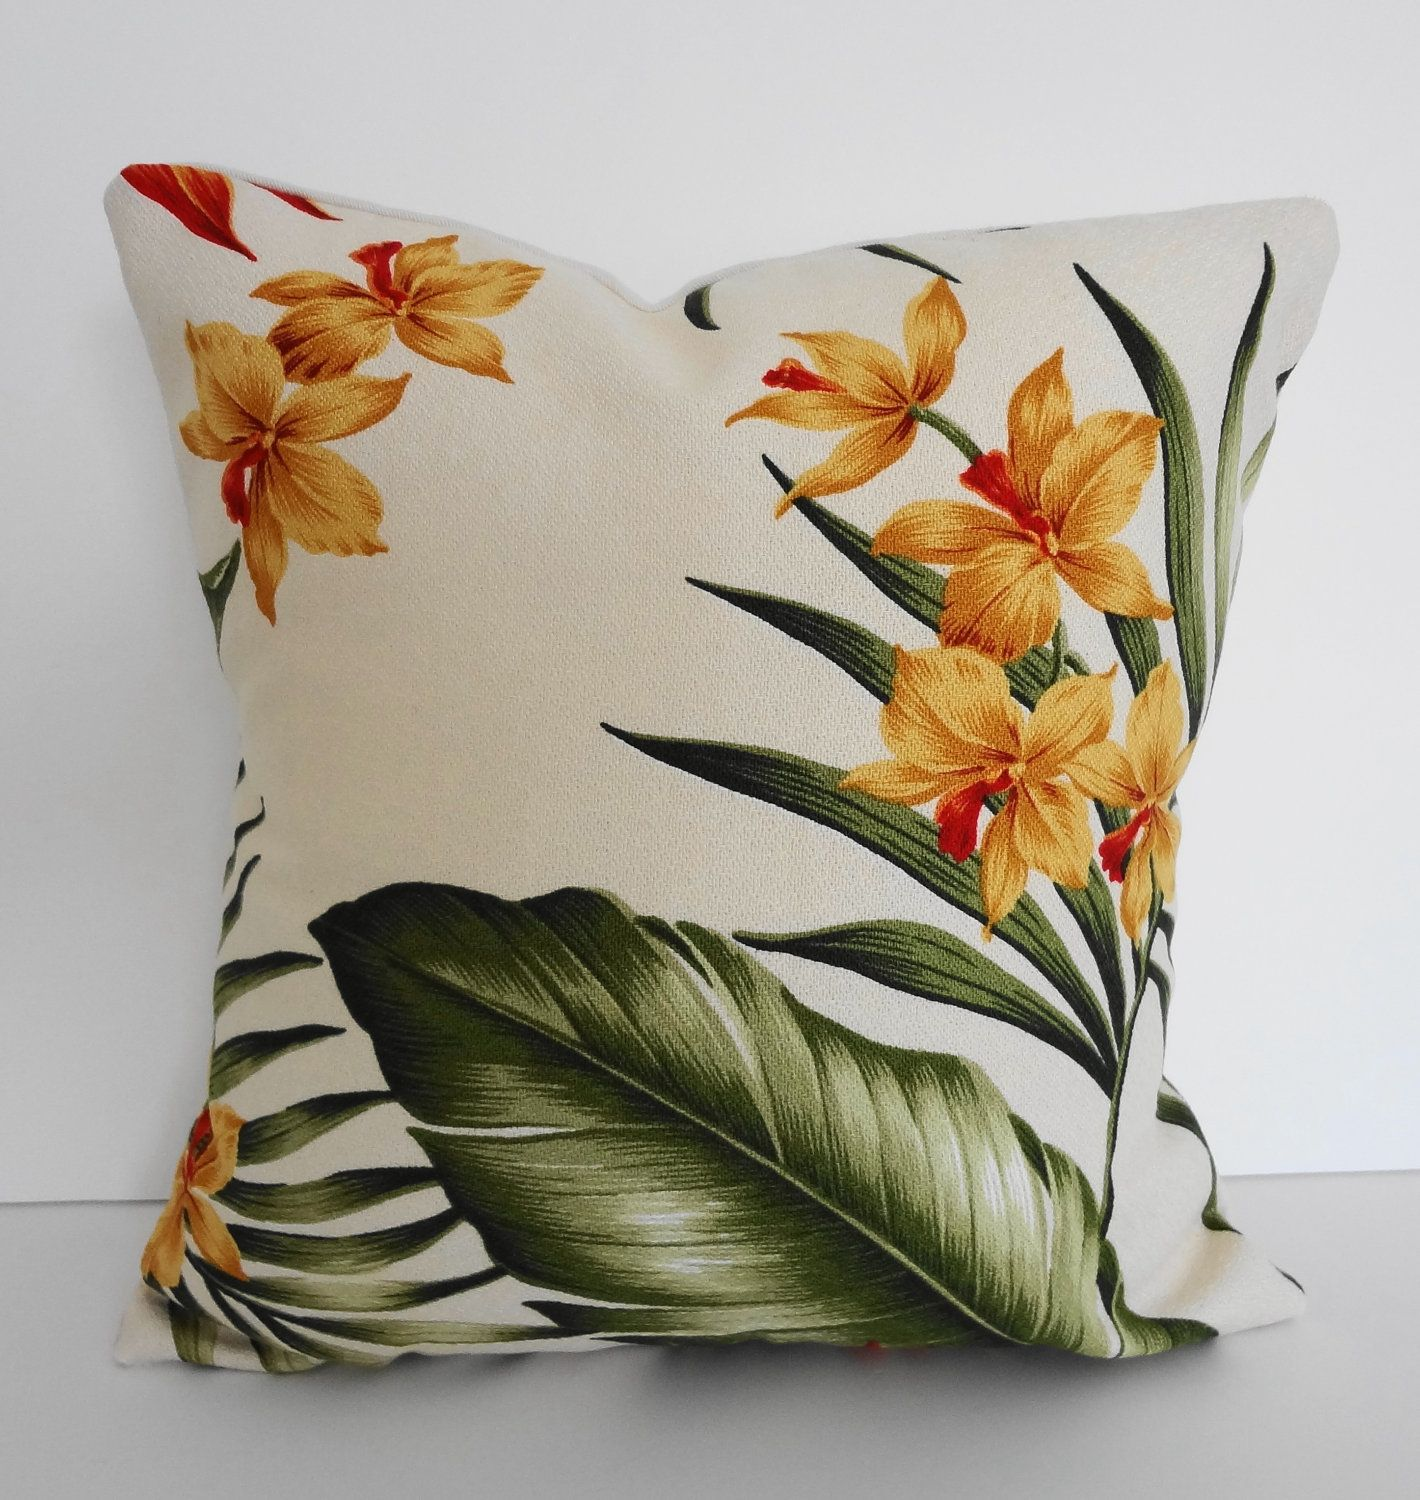 Tropical Throw Pillow Cover Hawaiian Print 12 X 12 Tropical Throw Pillow Covers Throw Pillows Tropical Pillows